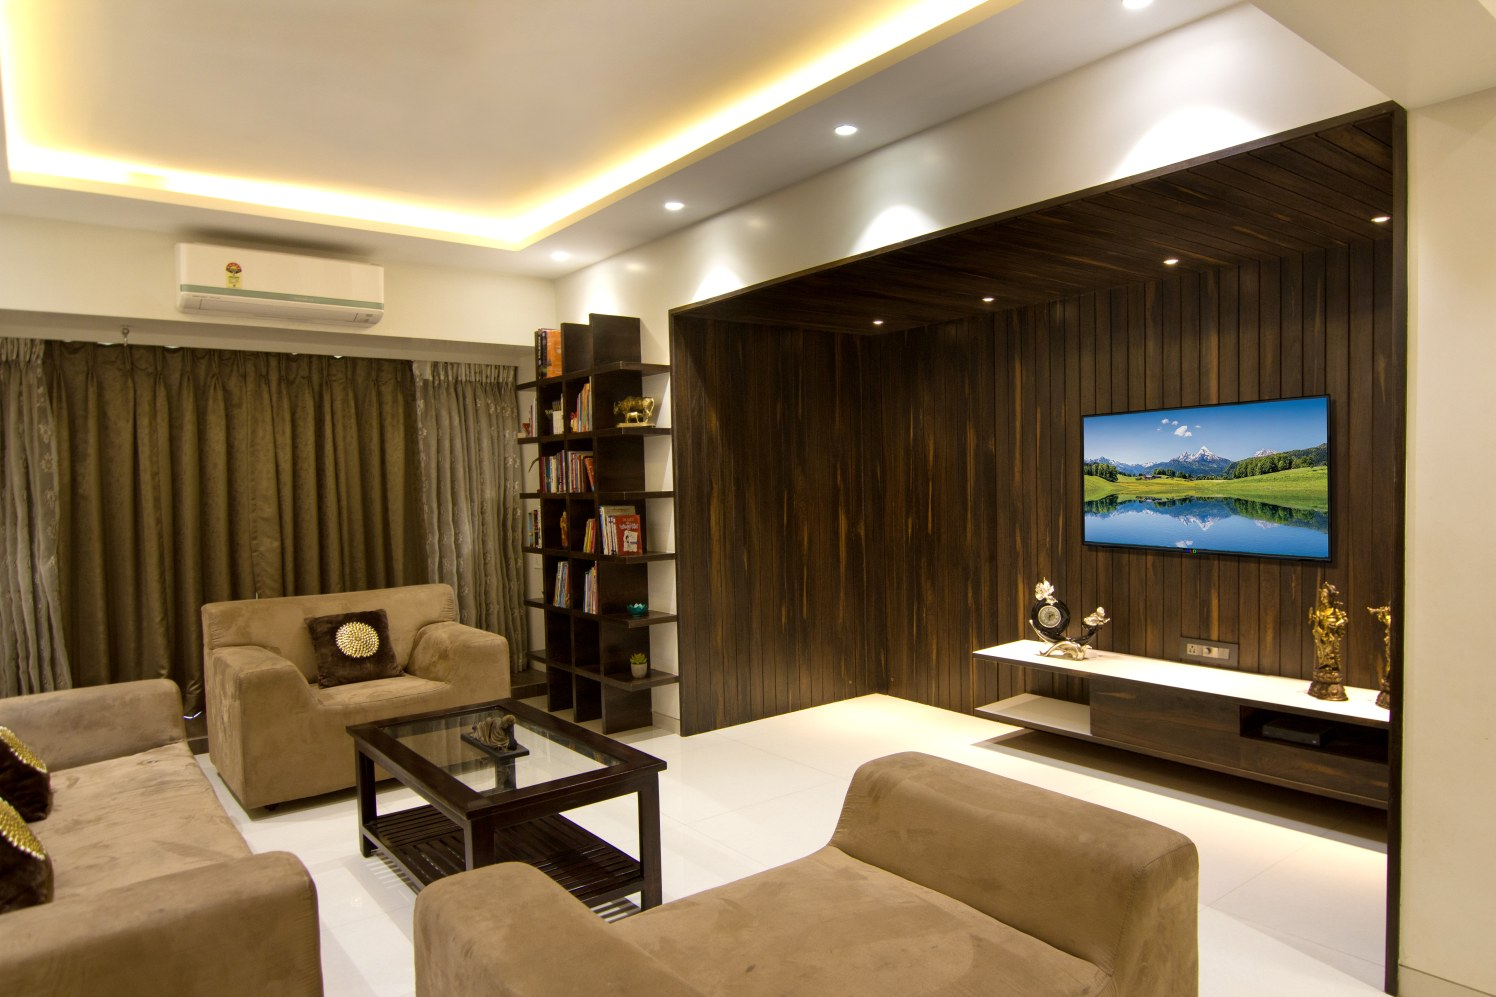 Living Room by Rupali Naik Modern | Interior Design Photos & Ideas